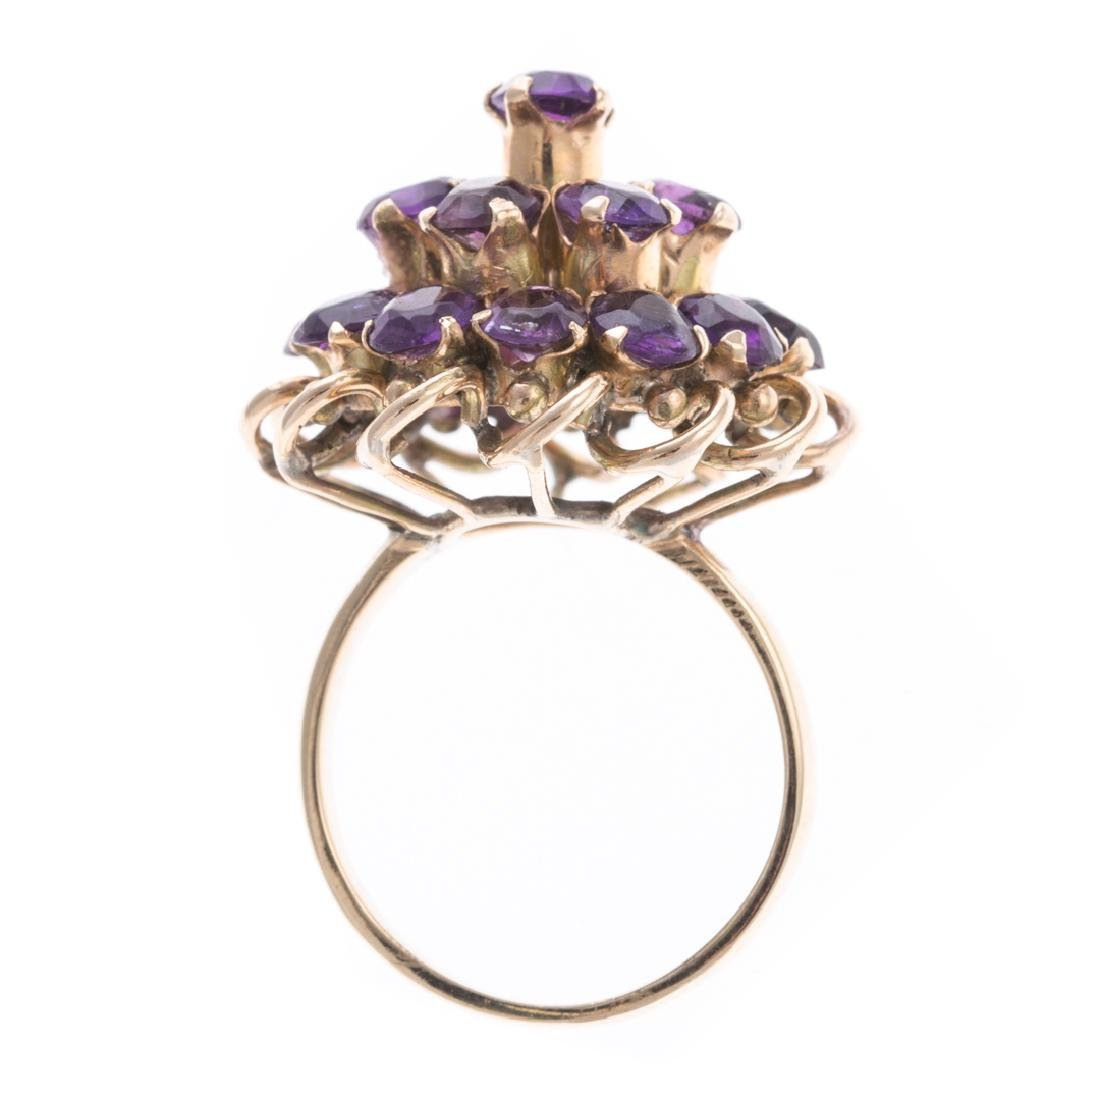 A Lady's Amethyst Ring & Earrings - 5